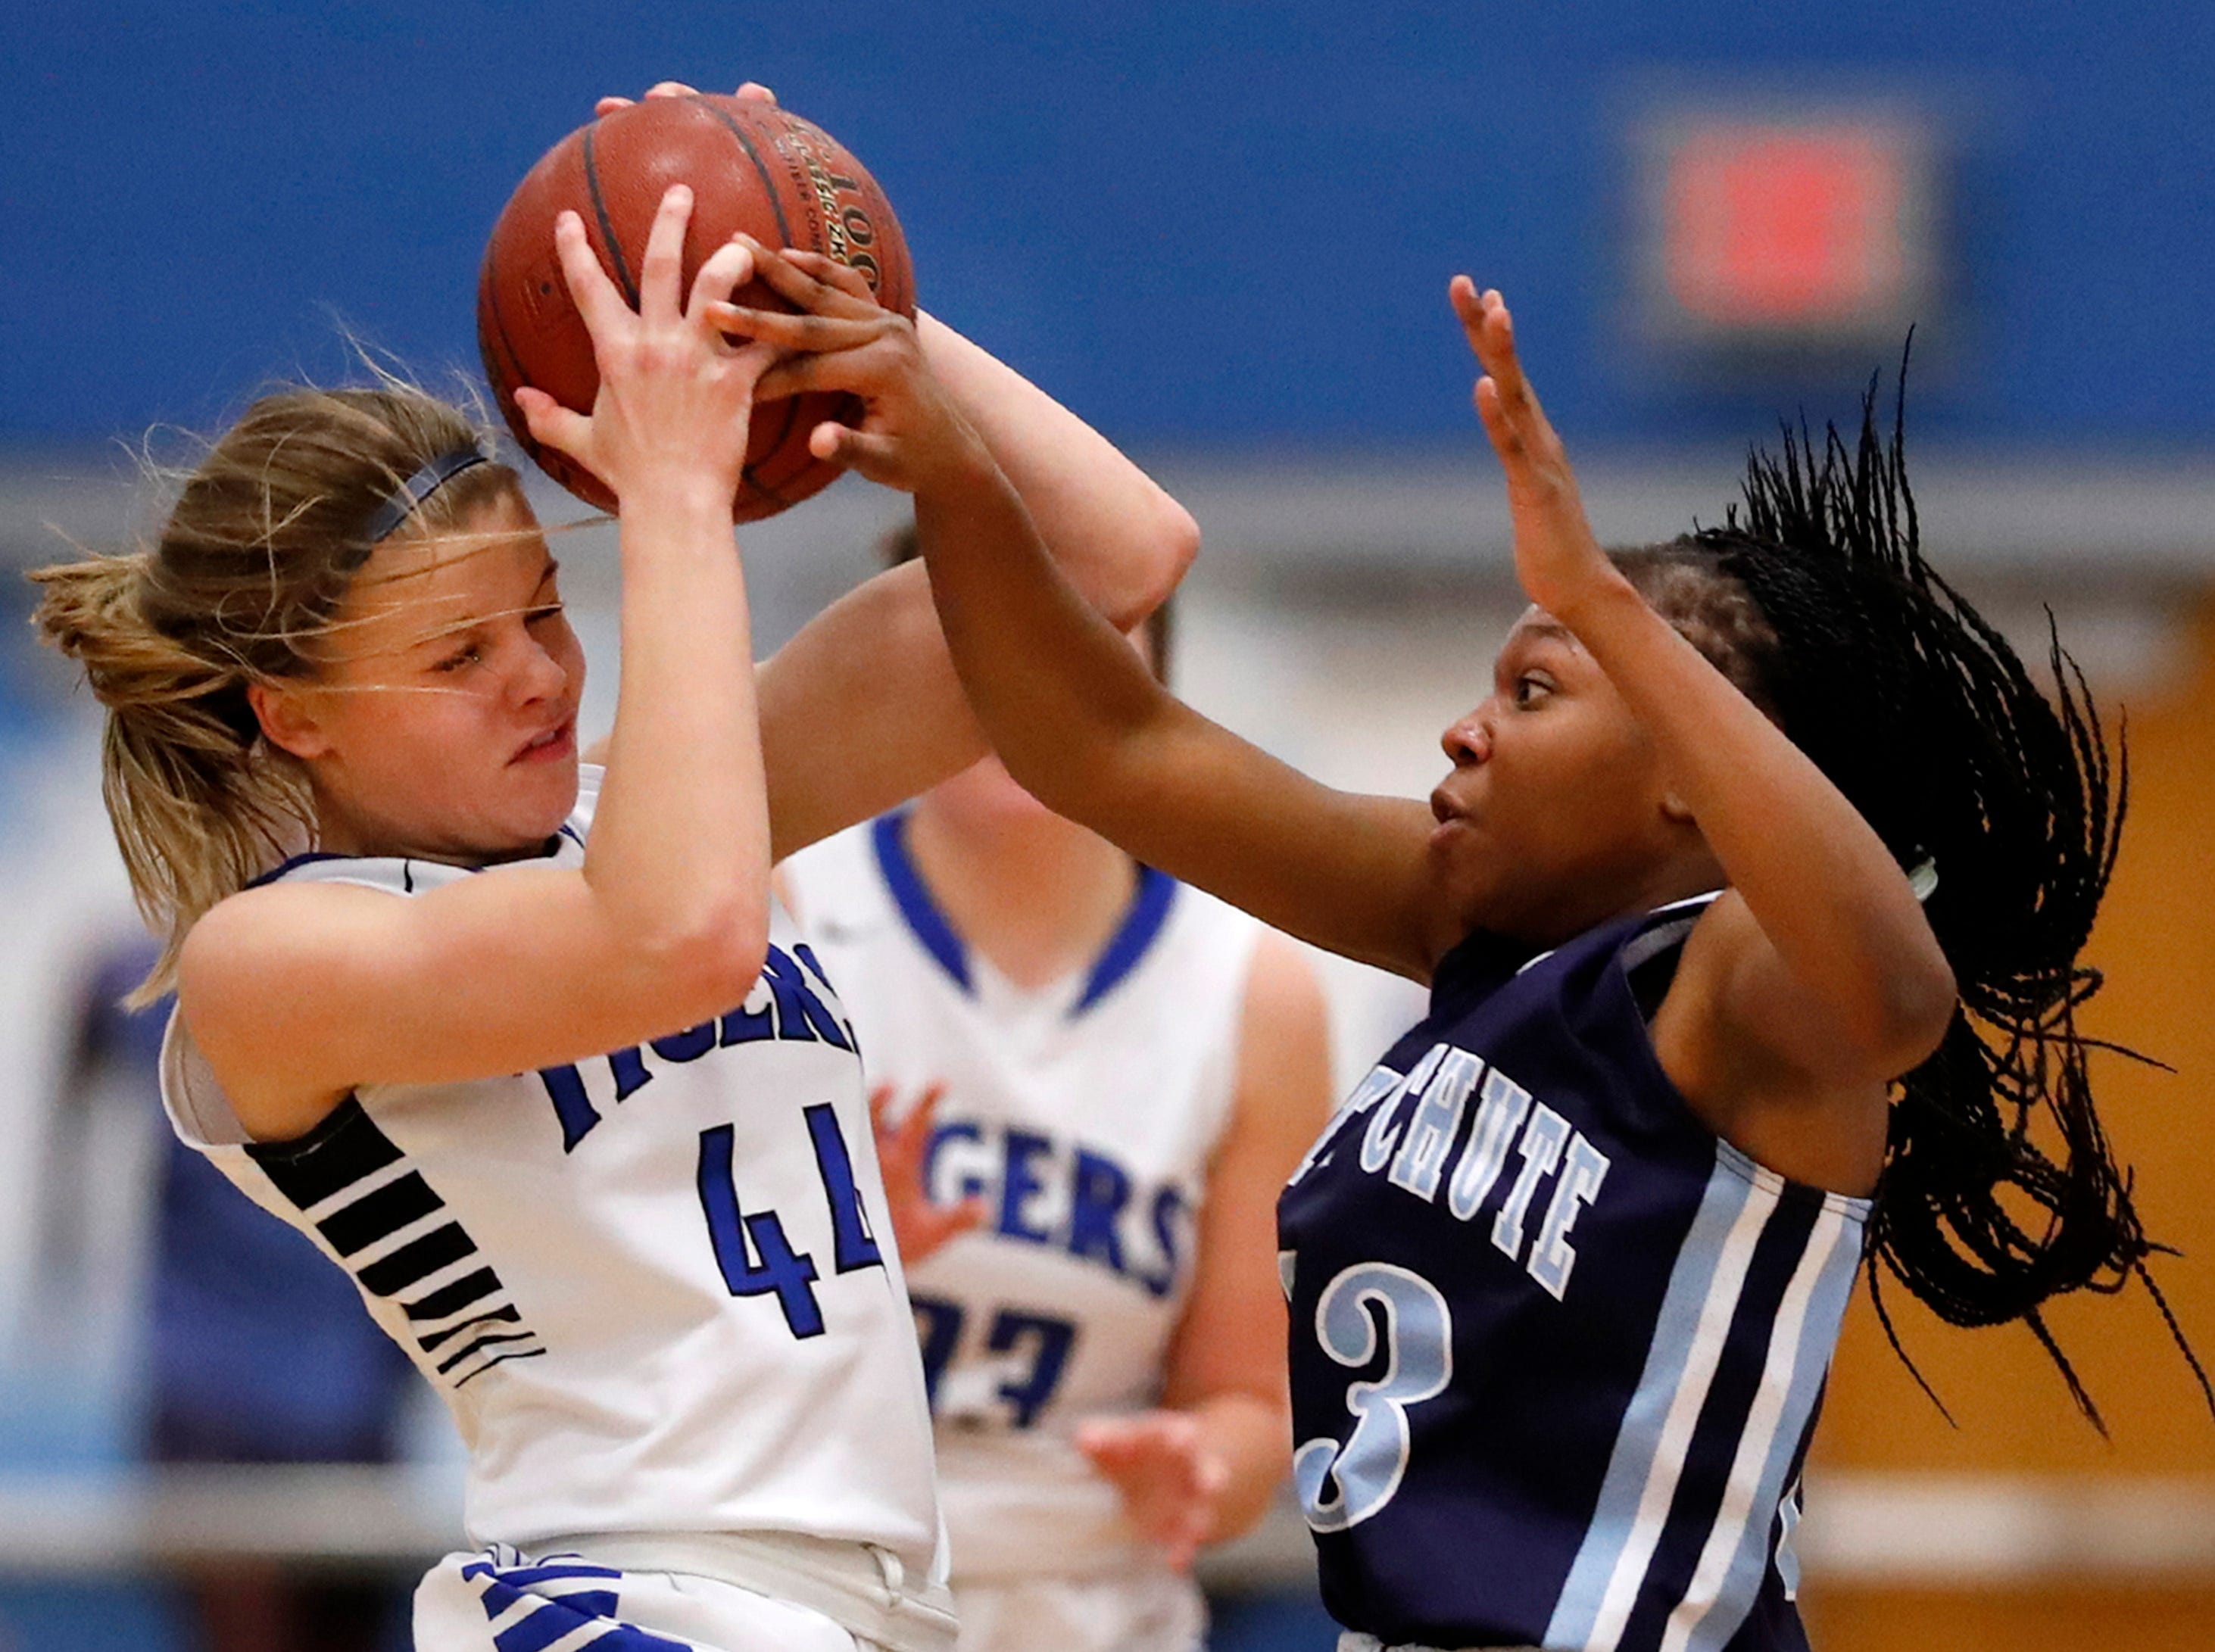 Wrightstown High School's Ella Diny tries to keep control of the ball while being covered by Little Chute High School's Alyssa Hutcherson Tuesday, Nov. 20, 2018, in Wrightstown, Wis. Wrightstown High School defeated Little Chute High School 73-56.Danny Damiani/USA TODAY NETWORK-Wisconsin